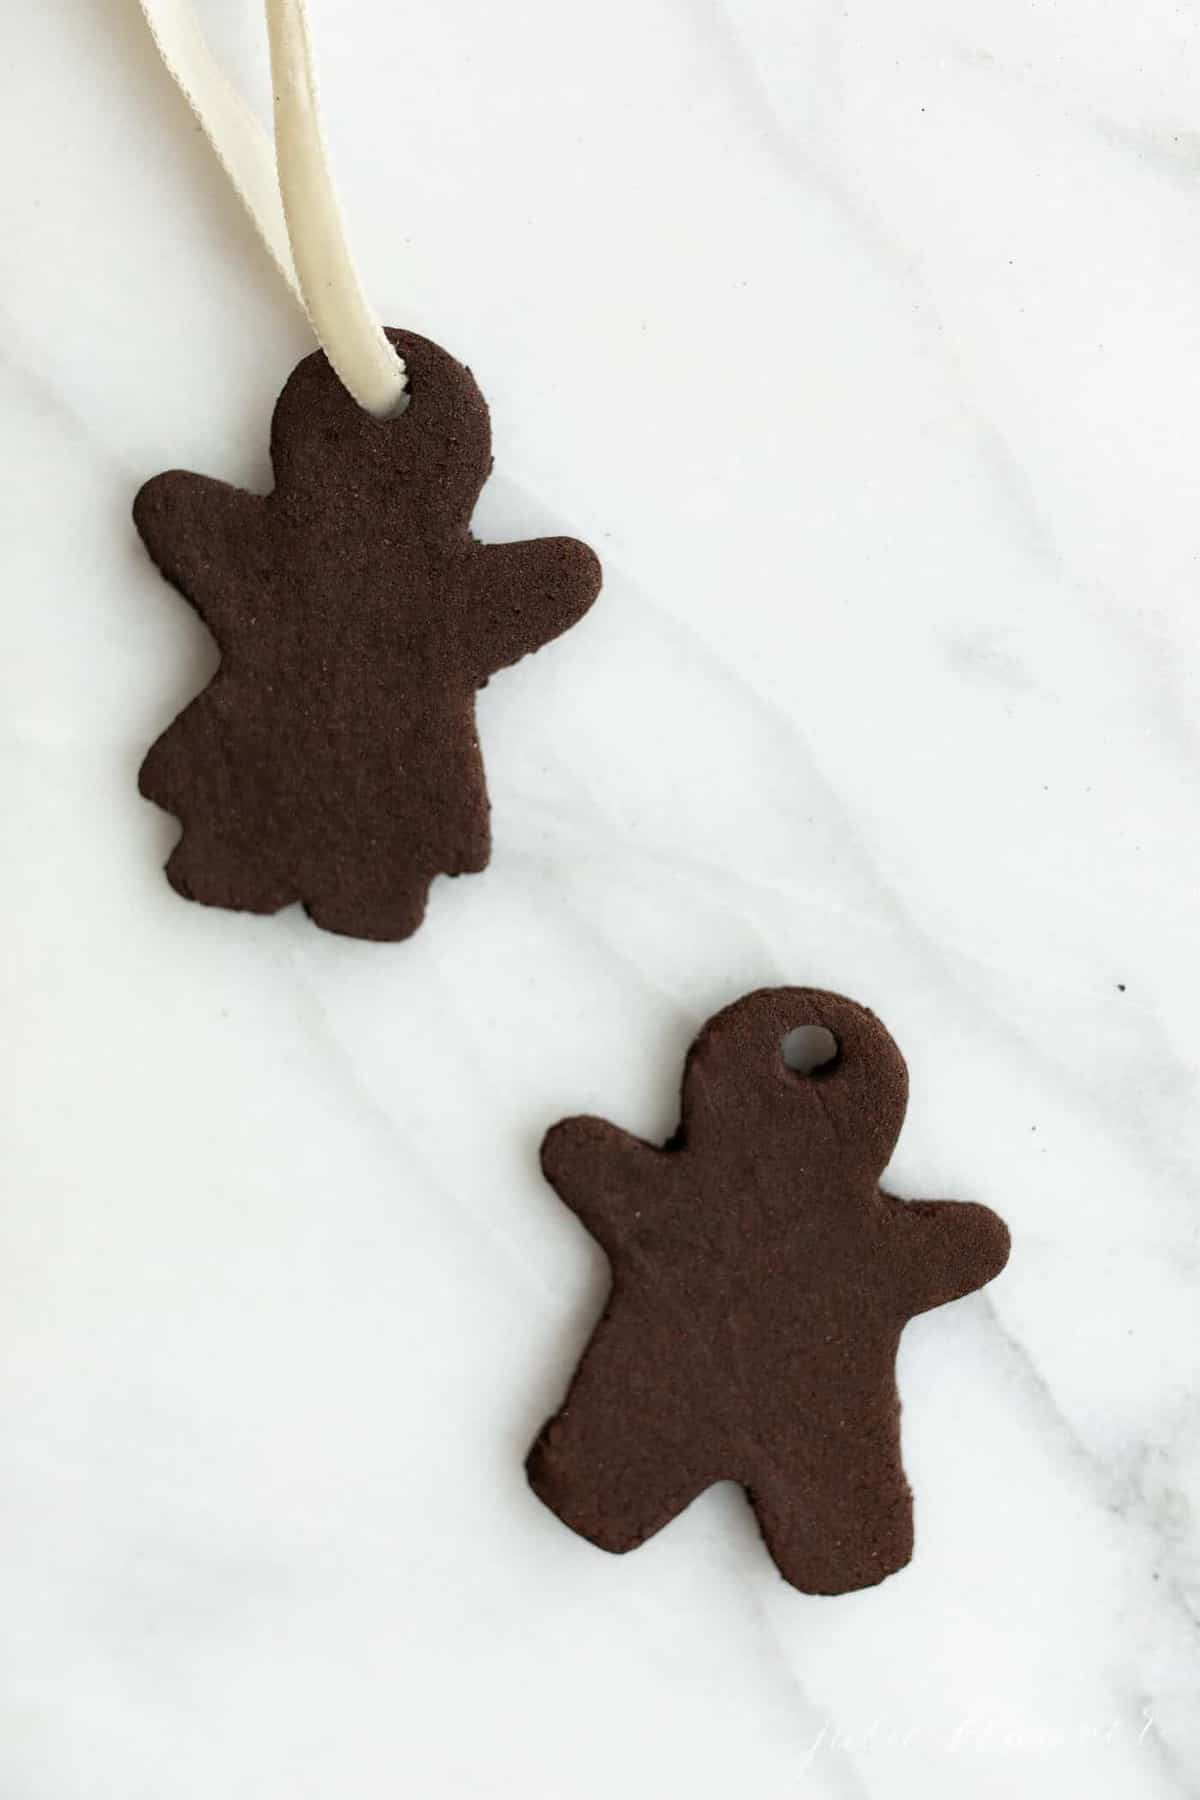 Two gingerbread cutout cinnamon applesauce ornaments on a marble surface.